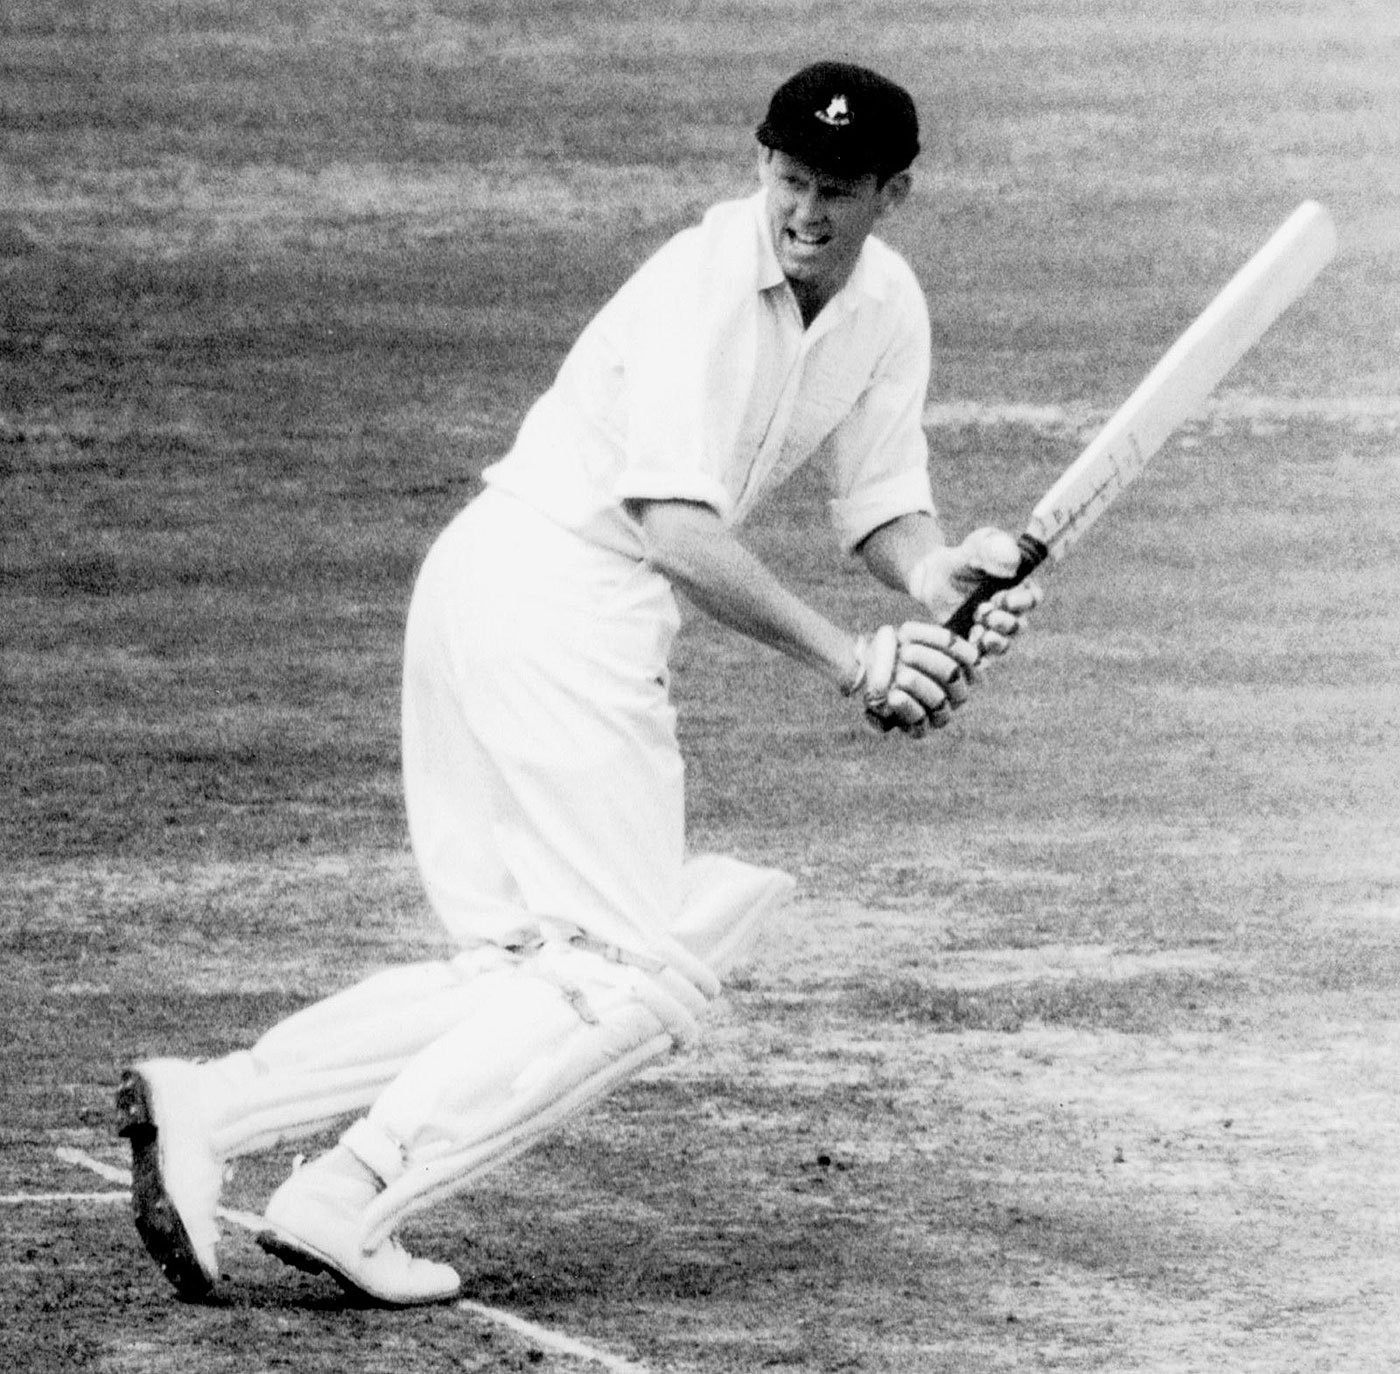 Graeme Pollock's 274 was one of the hallmarks of South Africa's final series before sporting isolation